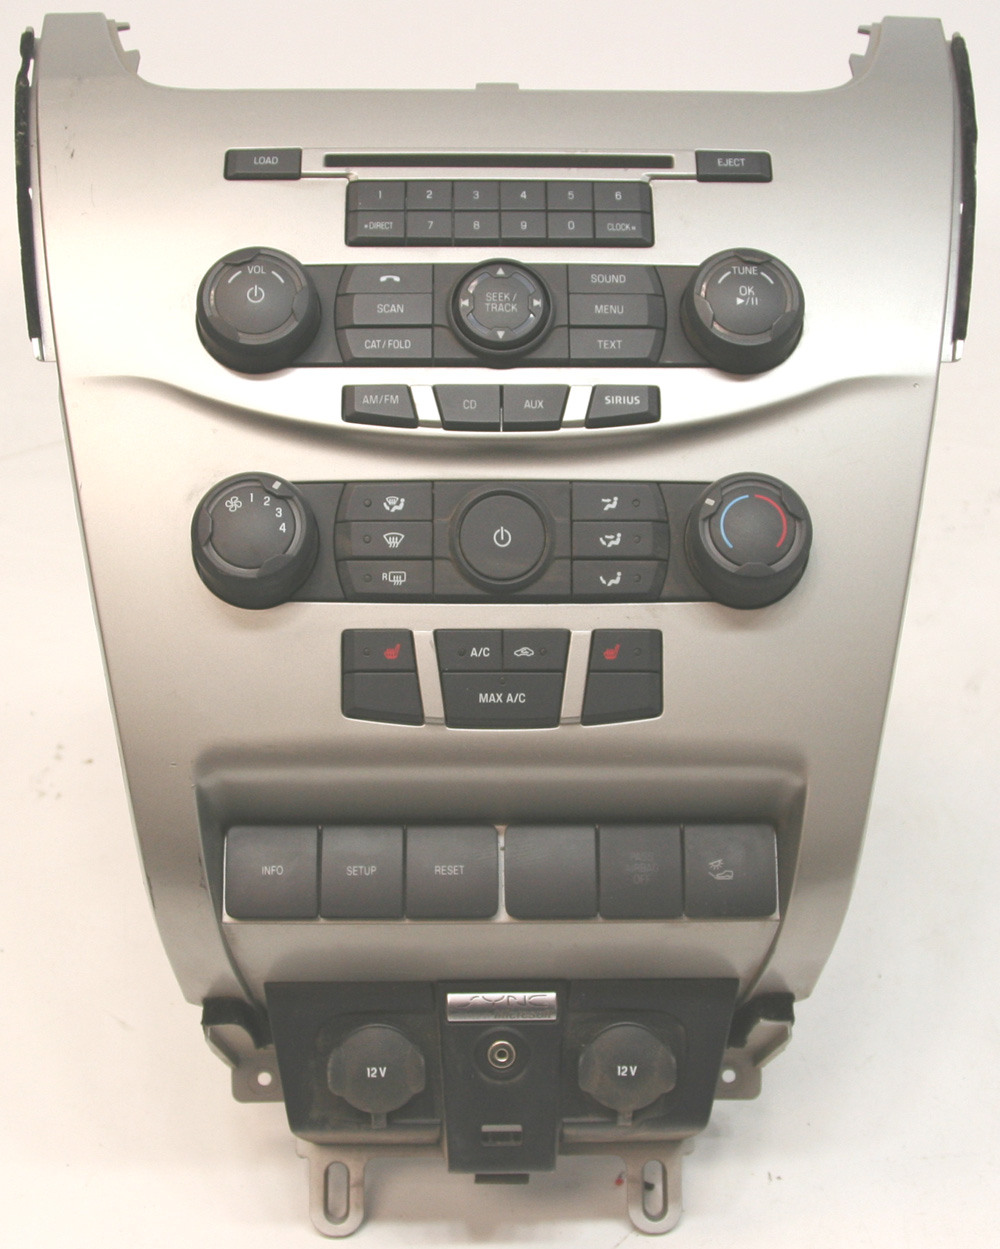 2009 ford focus factory stereo 6 disc changer cd player oem radio rh hifisoundconnection com 2015 Ford Focus 2015 Ford Focus